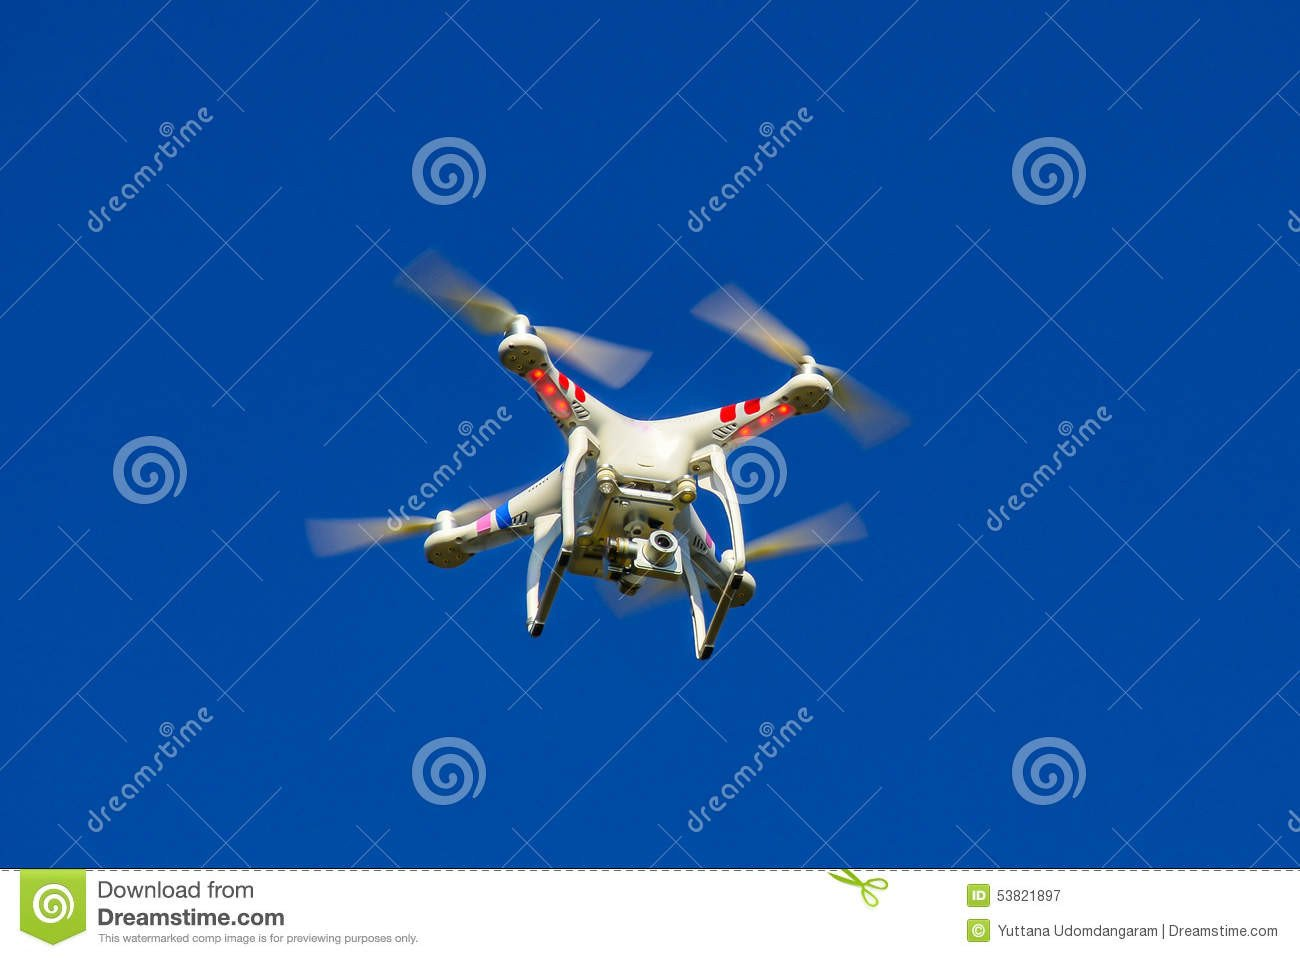 Drone Photography Business Plan Drones Stock Image